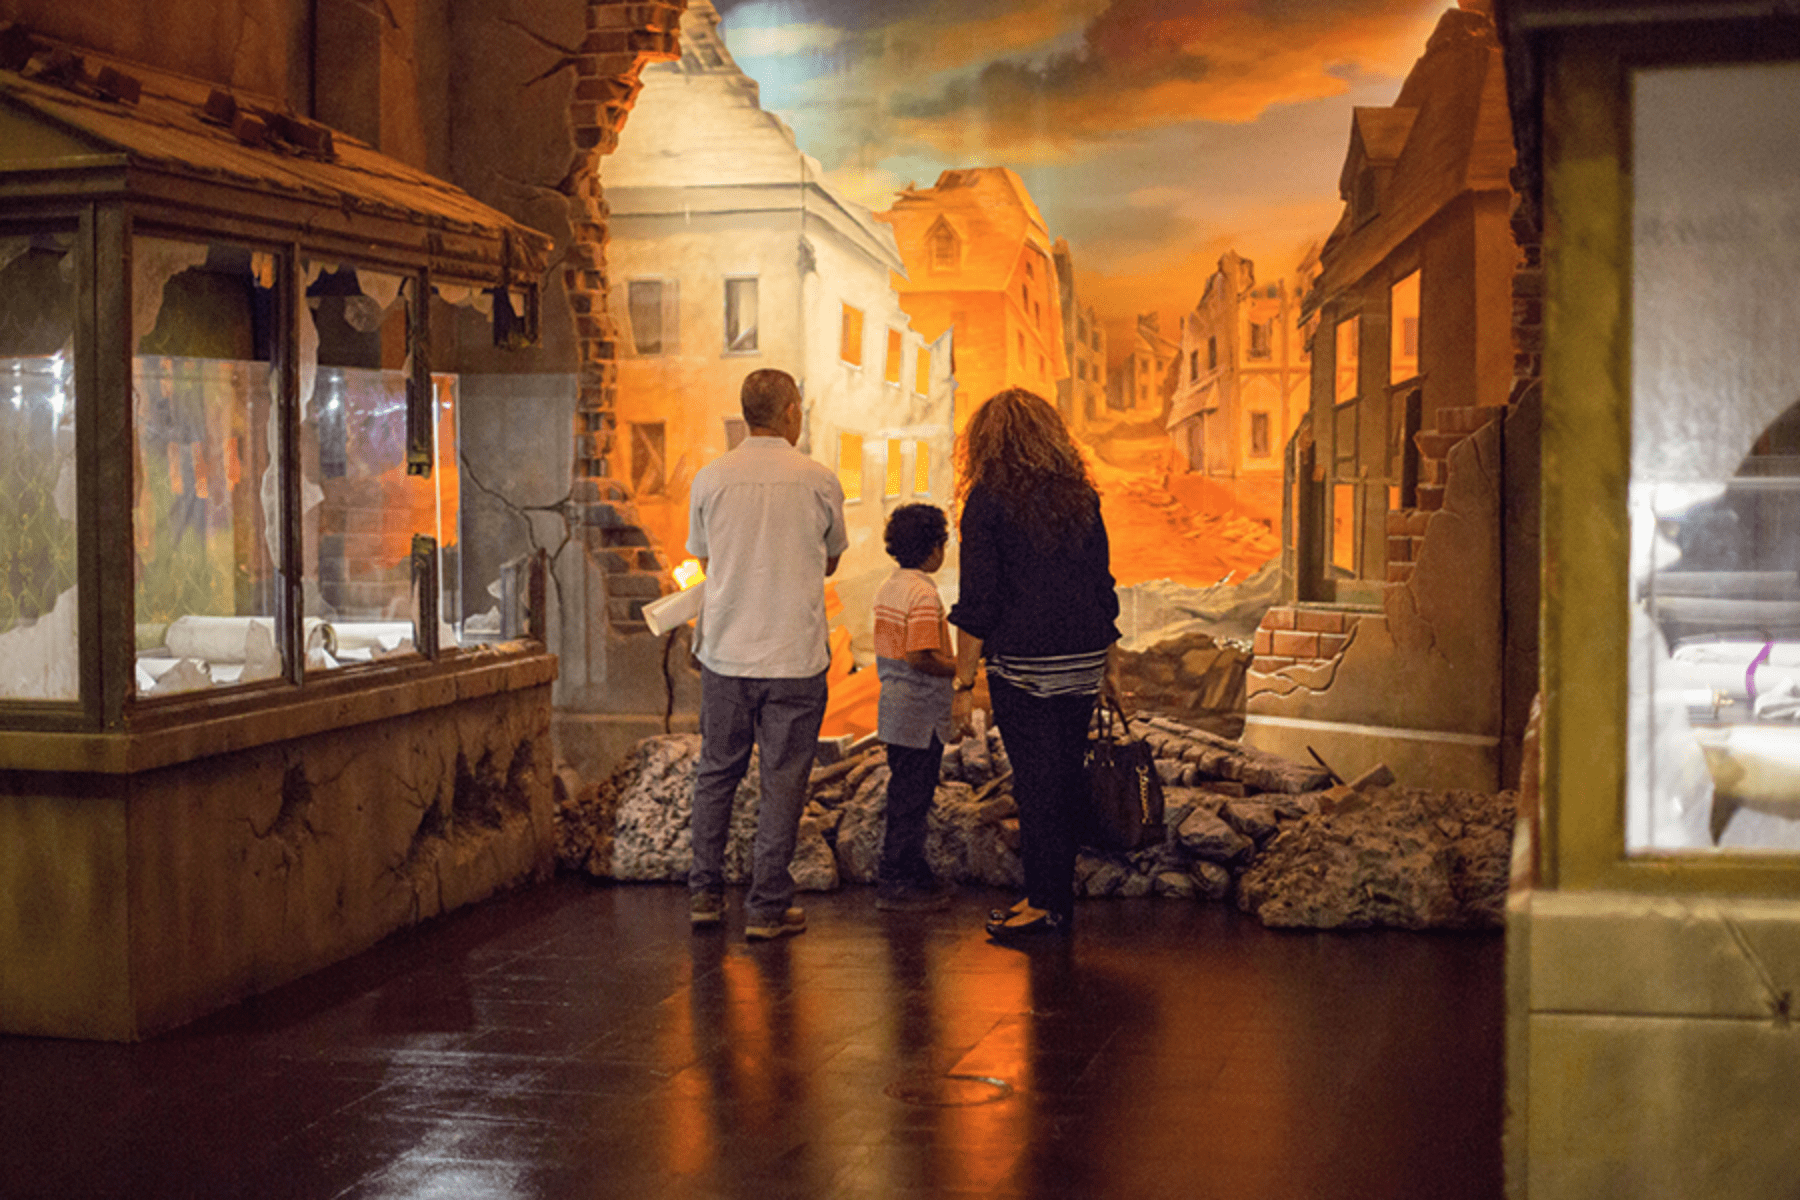 One of the exhibits at the museum of the Bible